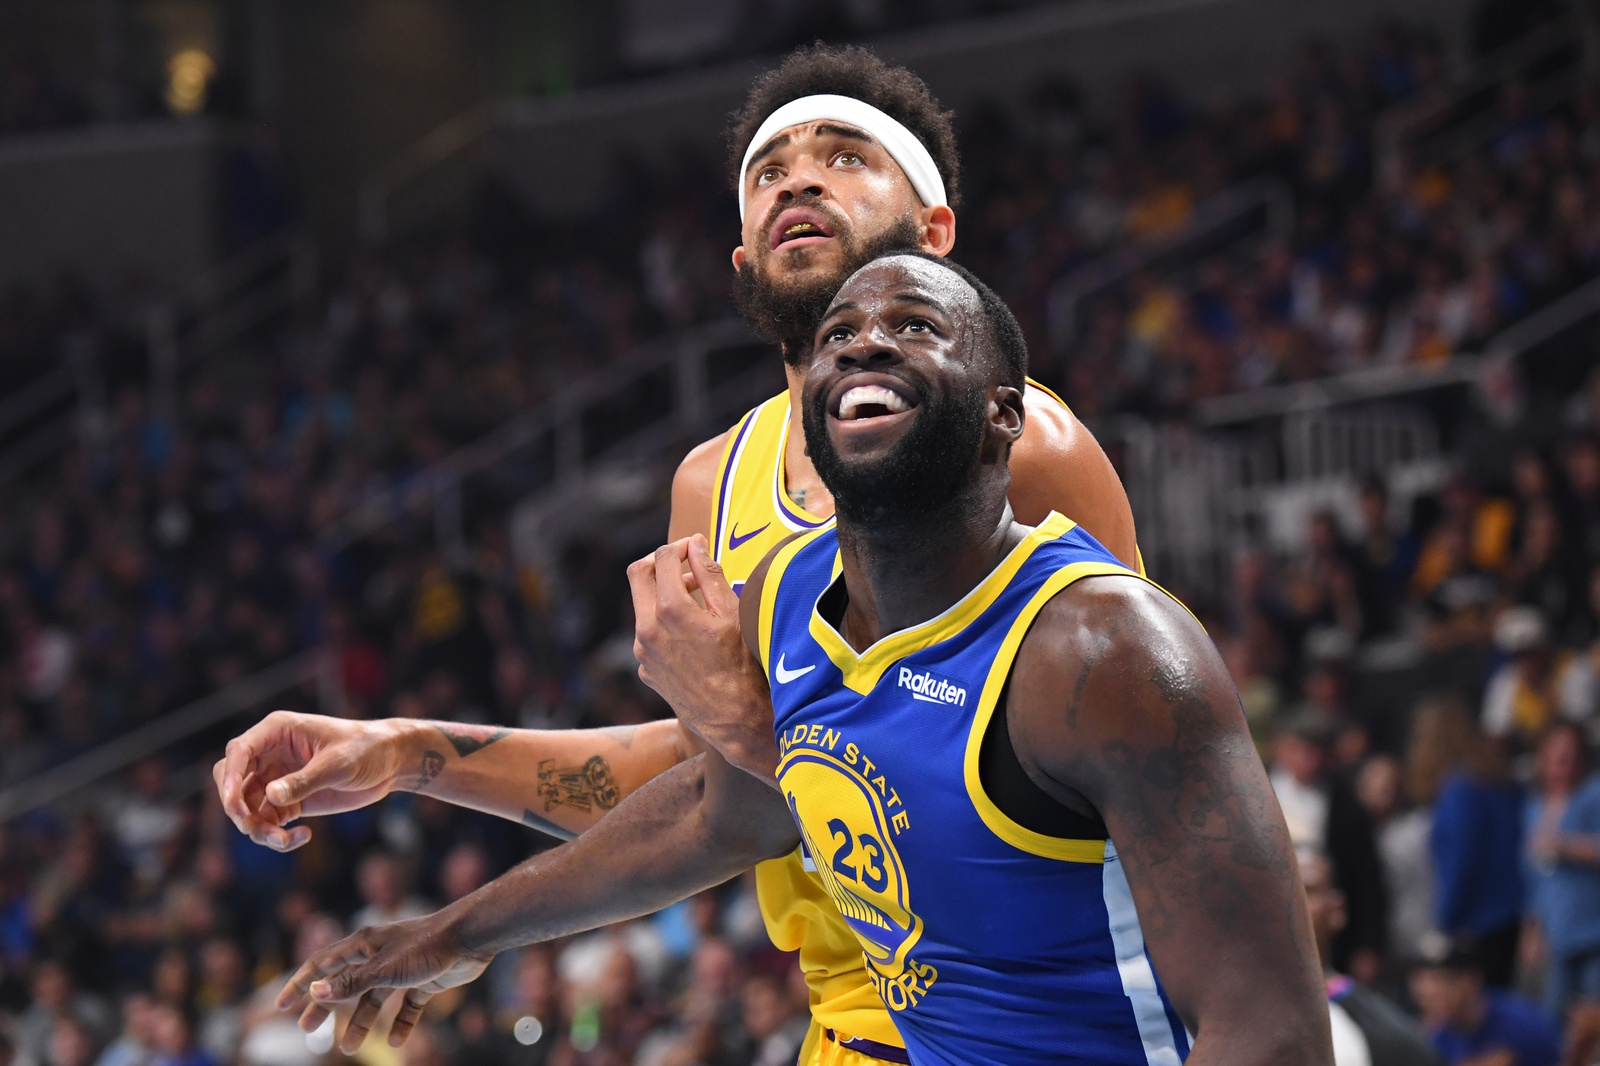 Draymond Green #23 of the Golden State Warriors boxes out JaVale McGee #7 of the Los Angeles Lakers during a pre-season game on October 12, 2018 at the SAP Center in San Jose, California.